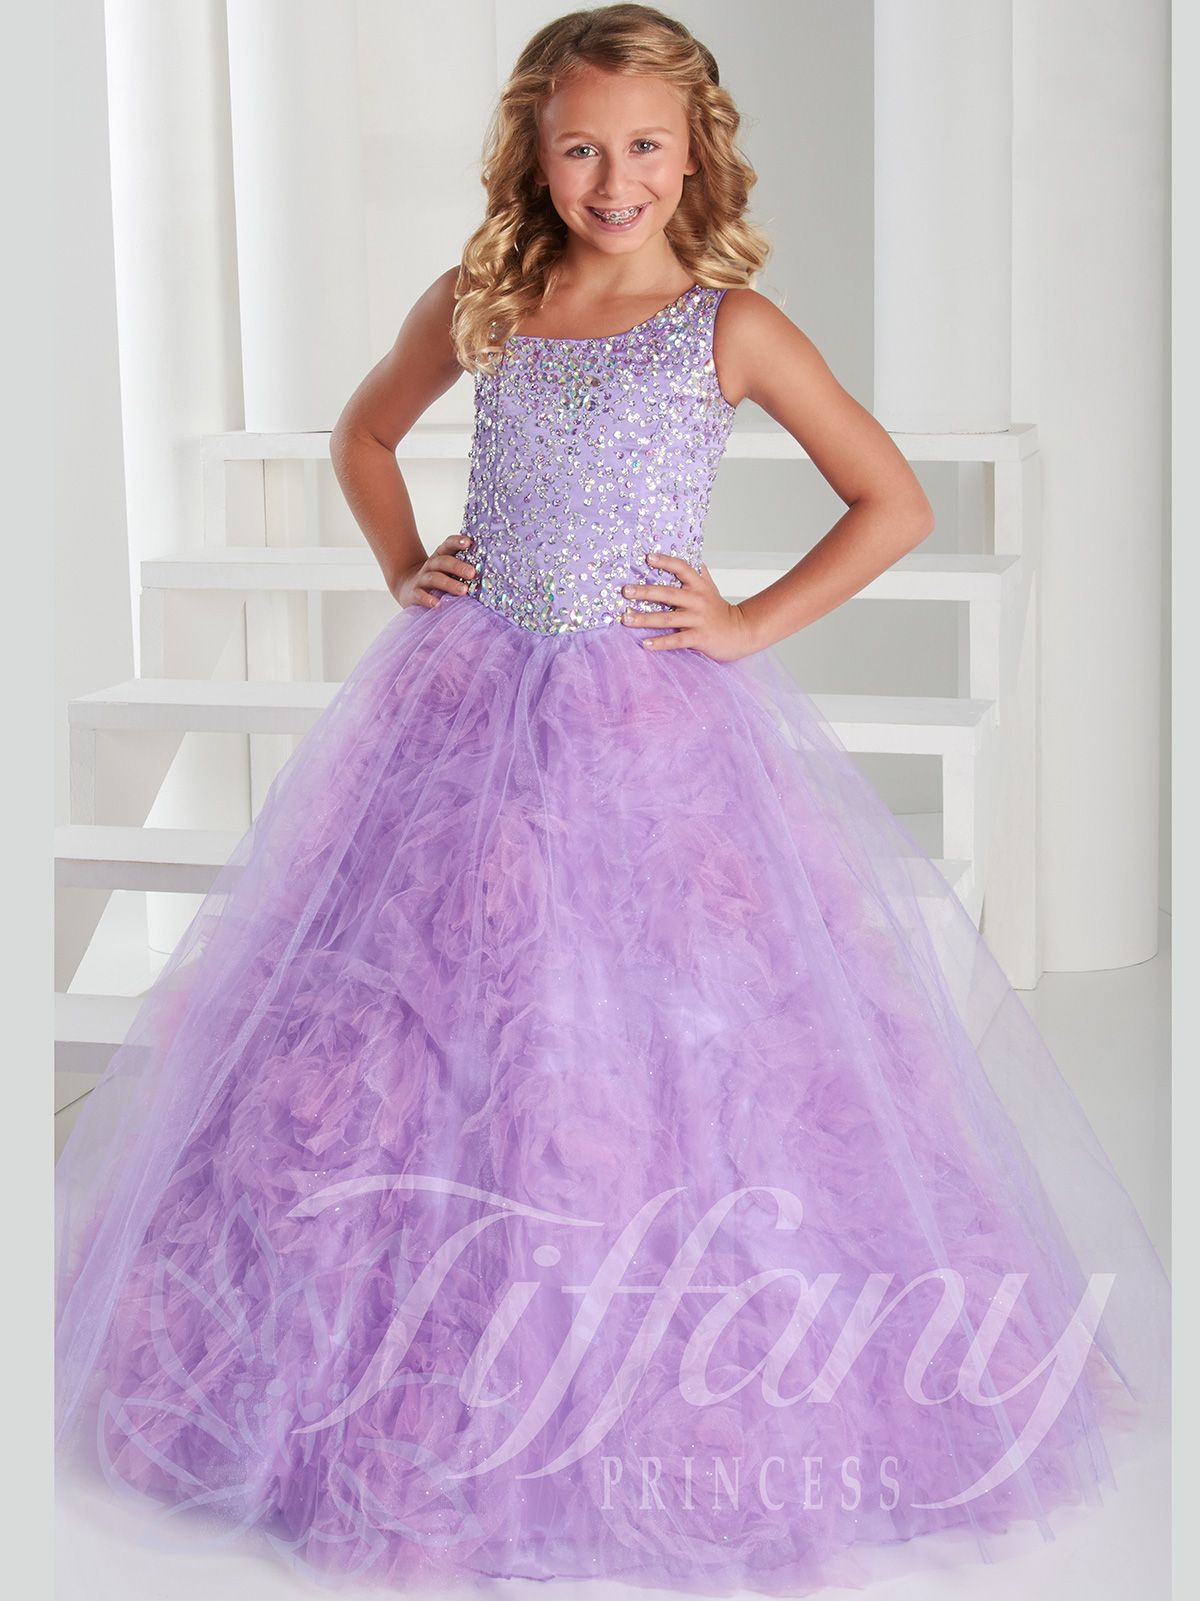 d4f567cdc52a2 Time for your girl to shine bright like a diamond in front of the judges! Tiffany  Princess 13413 is a pageant ball gown featuring a subtly slanted neckline  ...